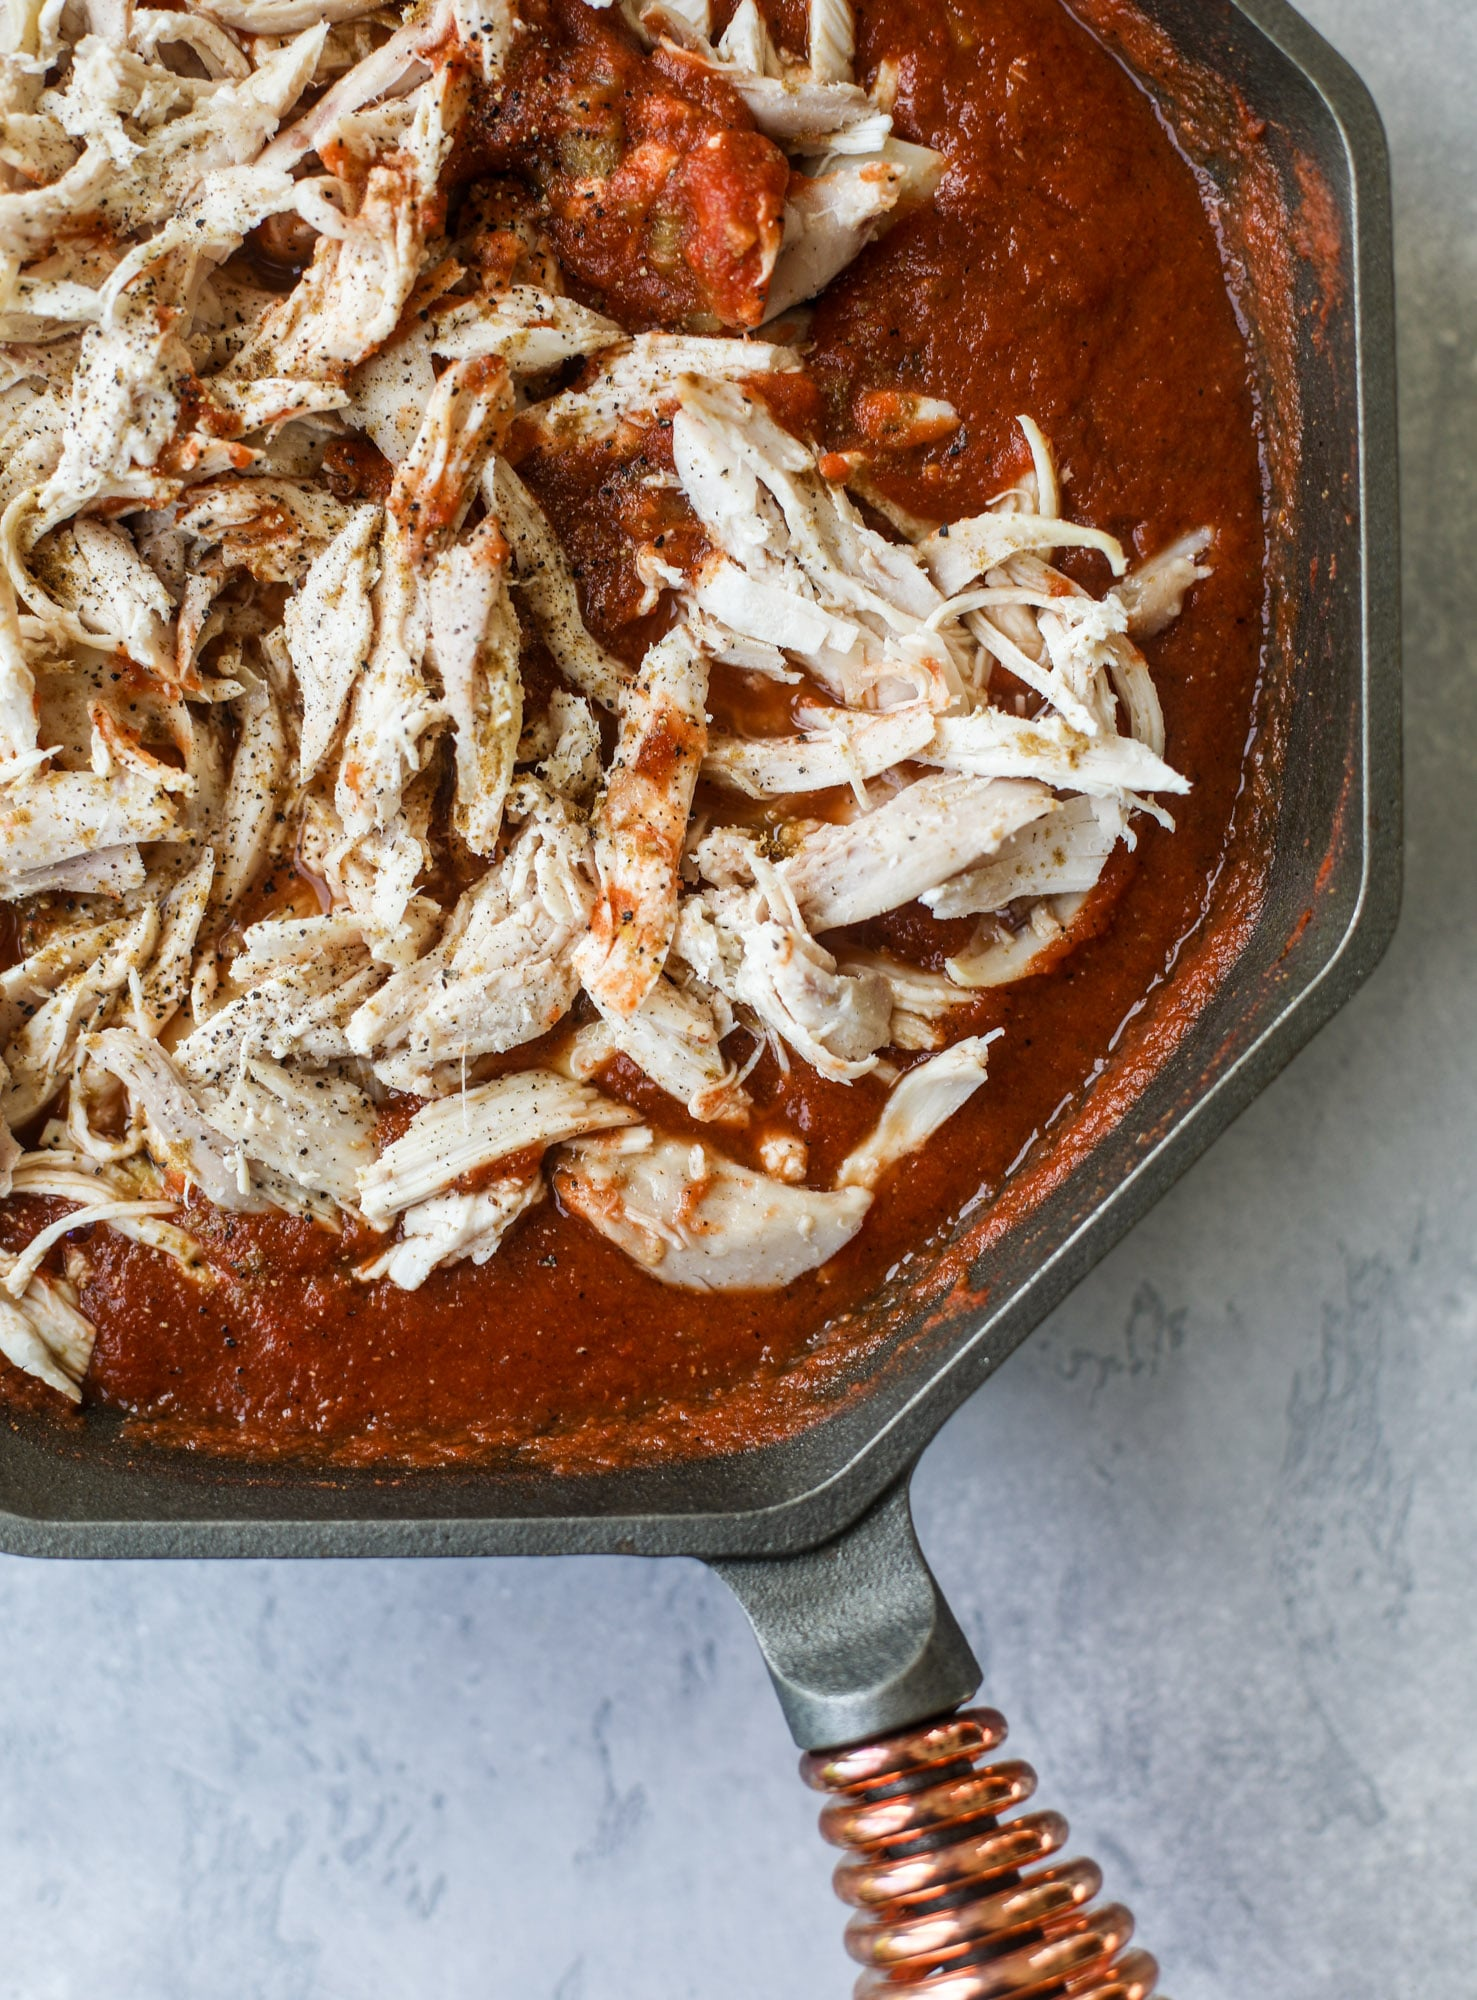 This skillet of fire roasted chicken chilaquiles is so easy, flavorful and delicious! A quick blender sauce made with fire roasted tomatoes, shredded chicken, lots of tortilla chips and your favorite toppings. Give me all the cheese and guacamole! I howsweeteats.com #chicken #chilaquiles #recipe #easy #dinner